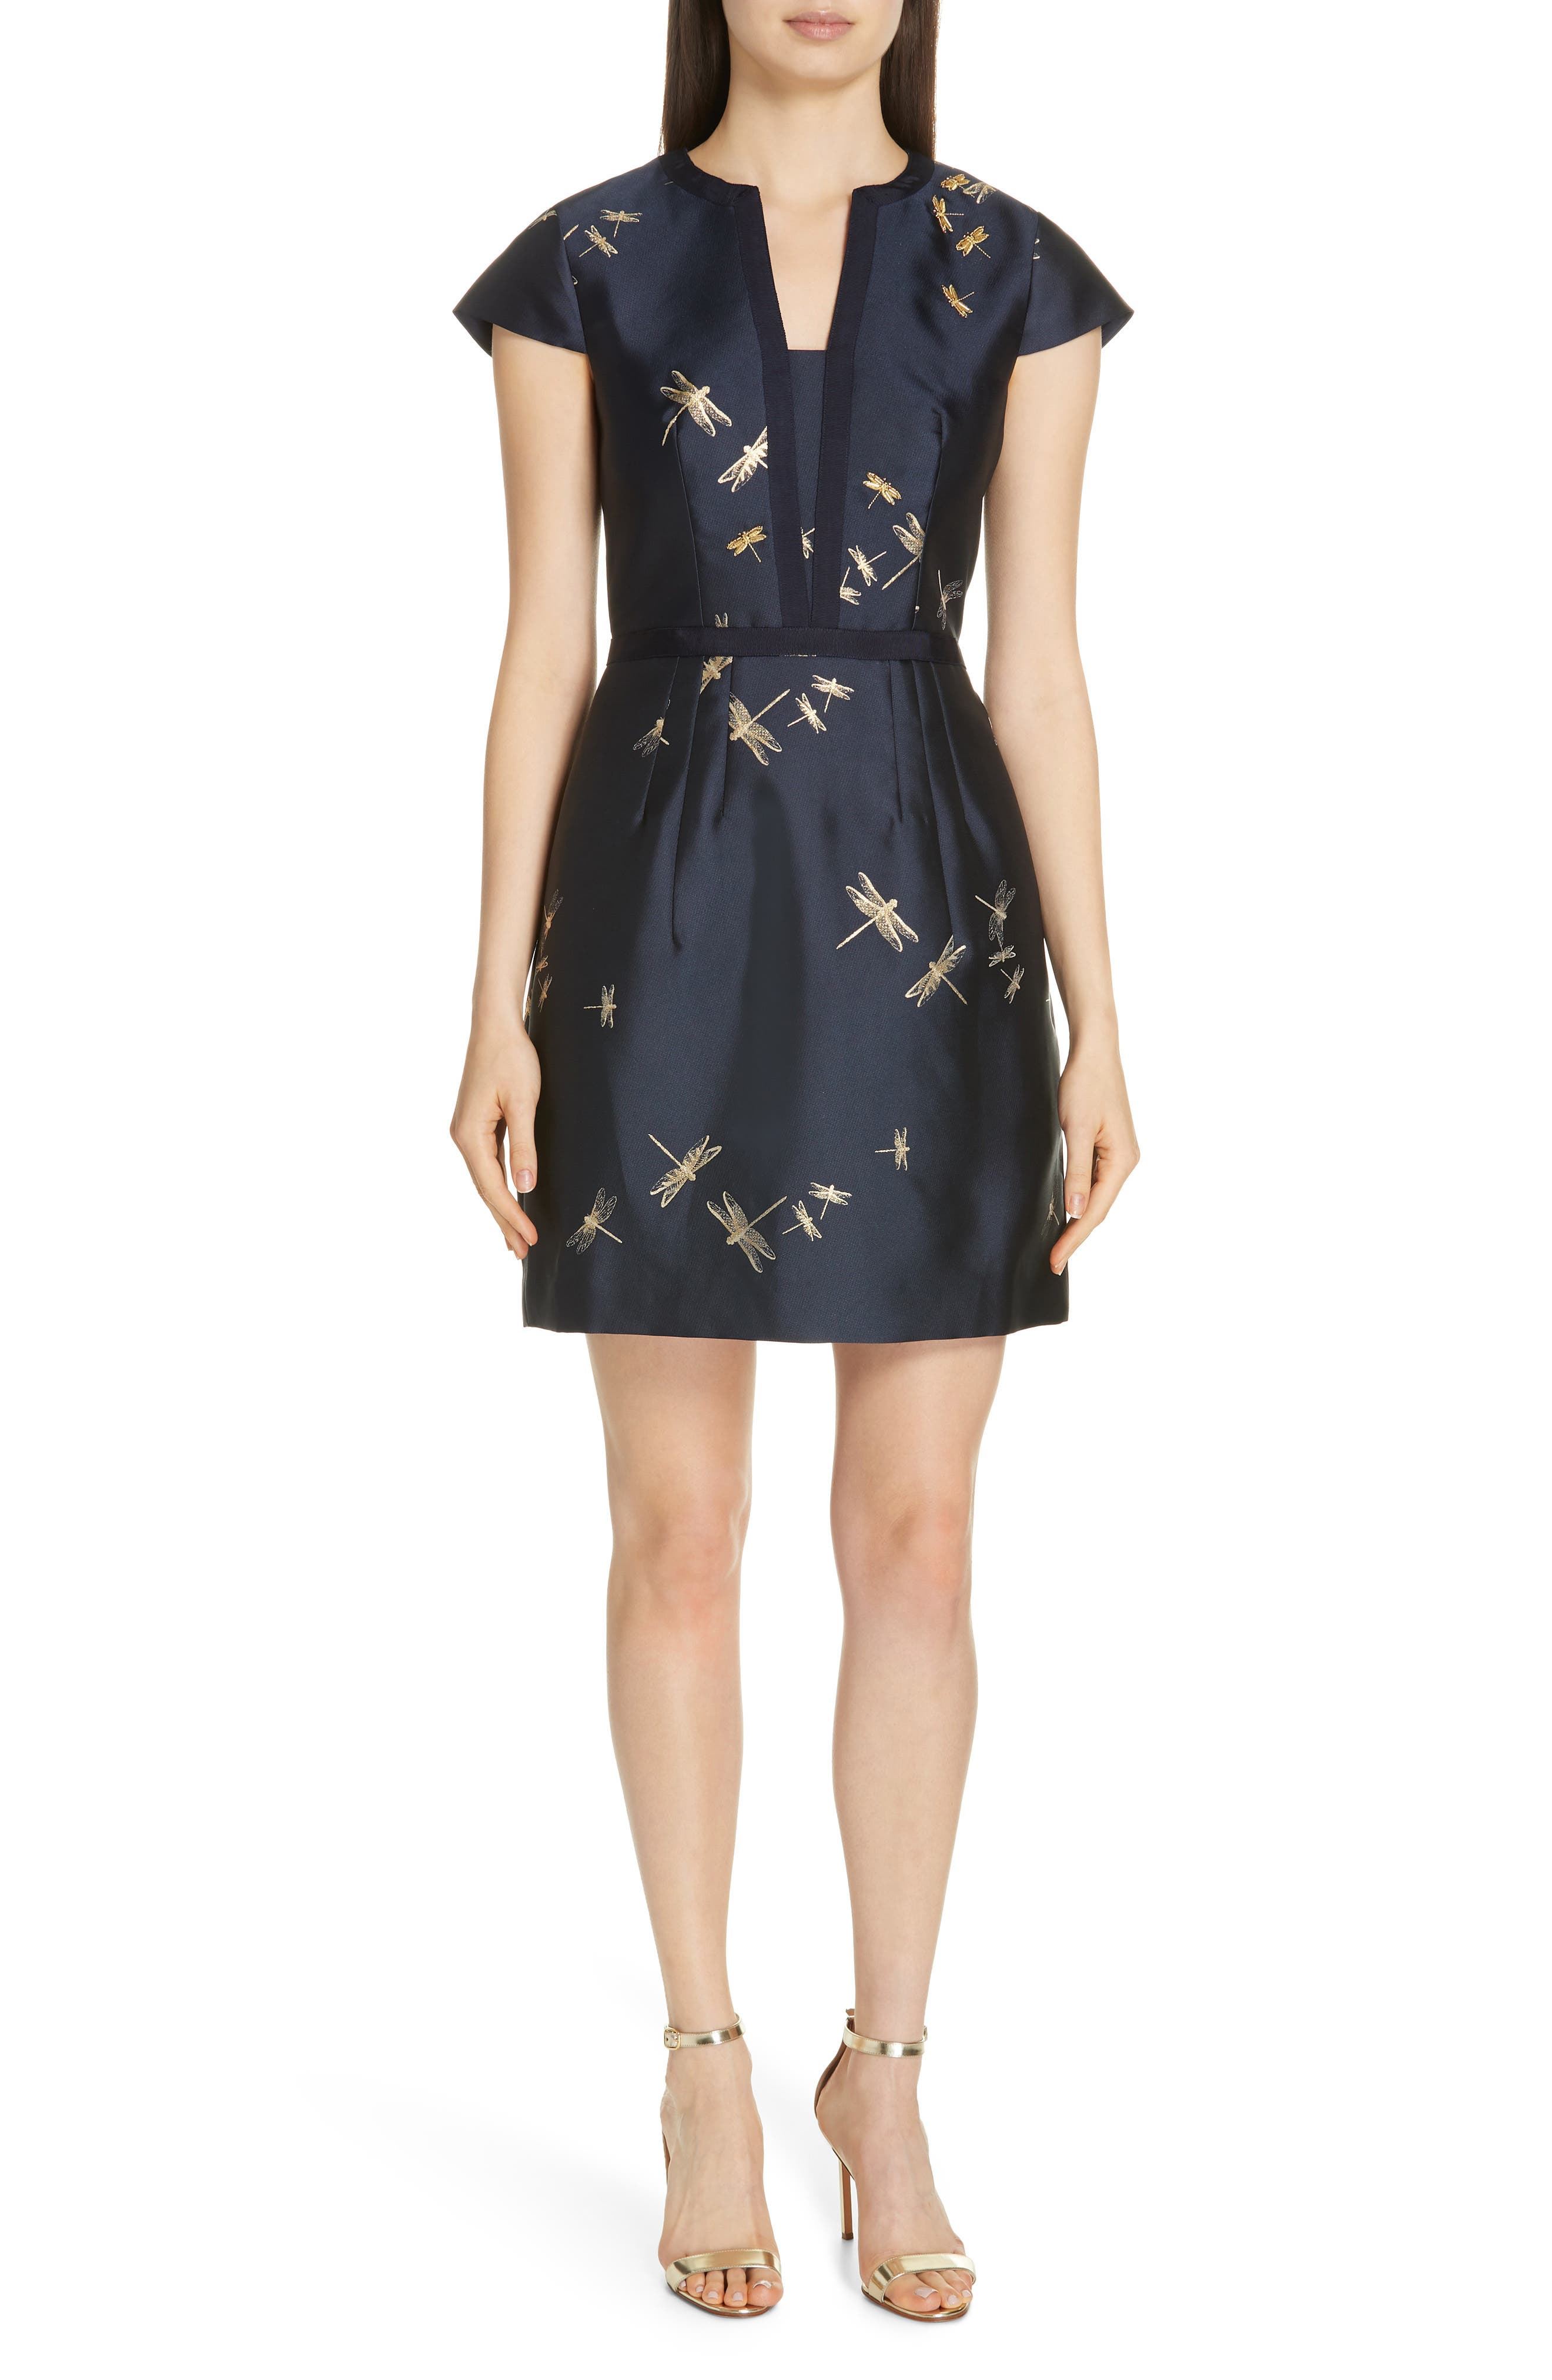 TED BAKER Hartty Dragonfly Jacquard Dress in Navy